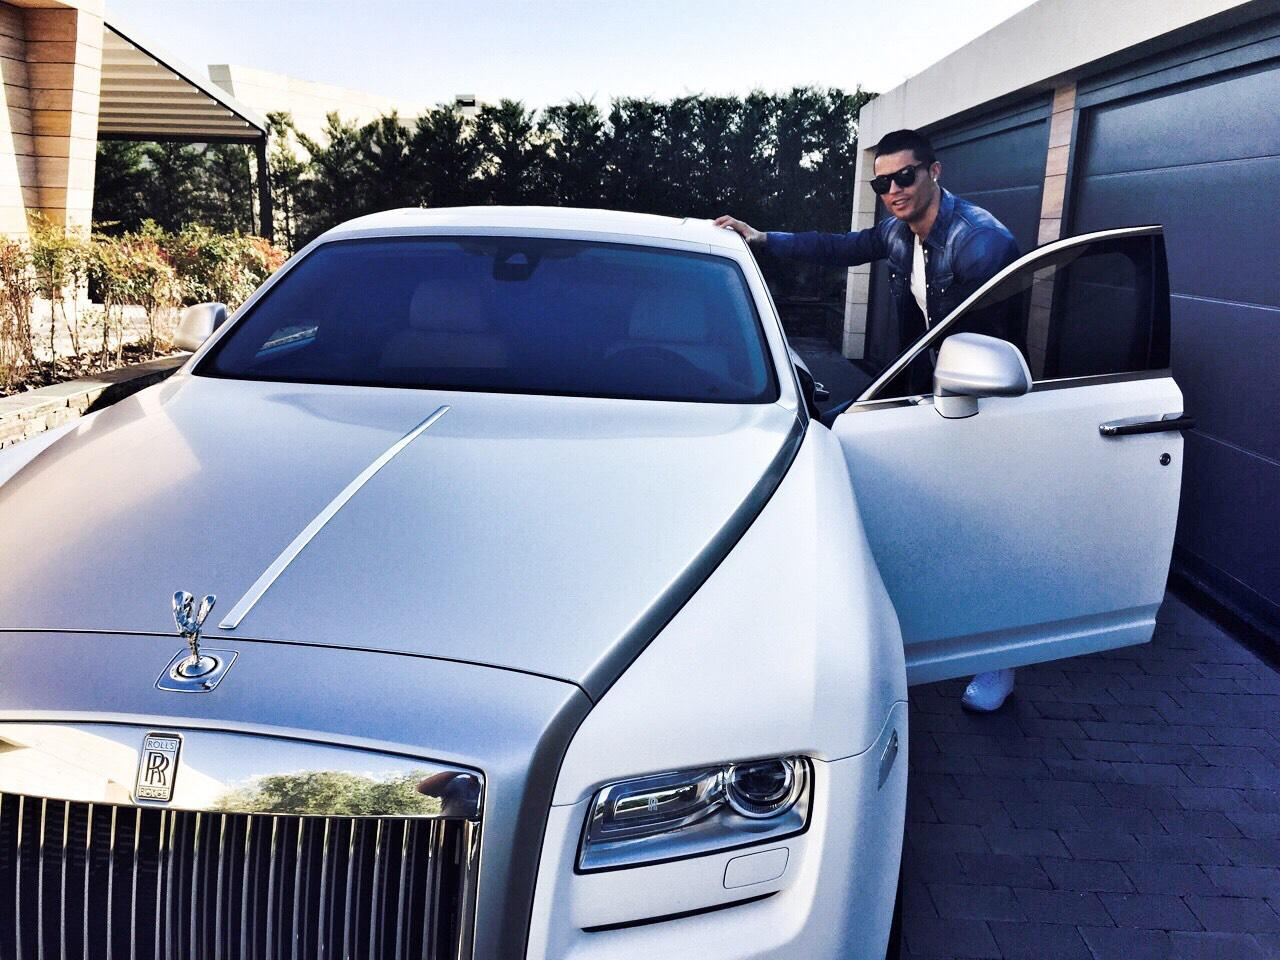 Cristiano Ronaldo Has Bought A $18 Million Bugatti Which Is The World's Most Expensive Car